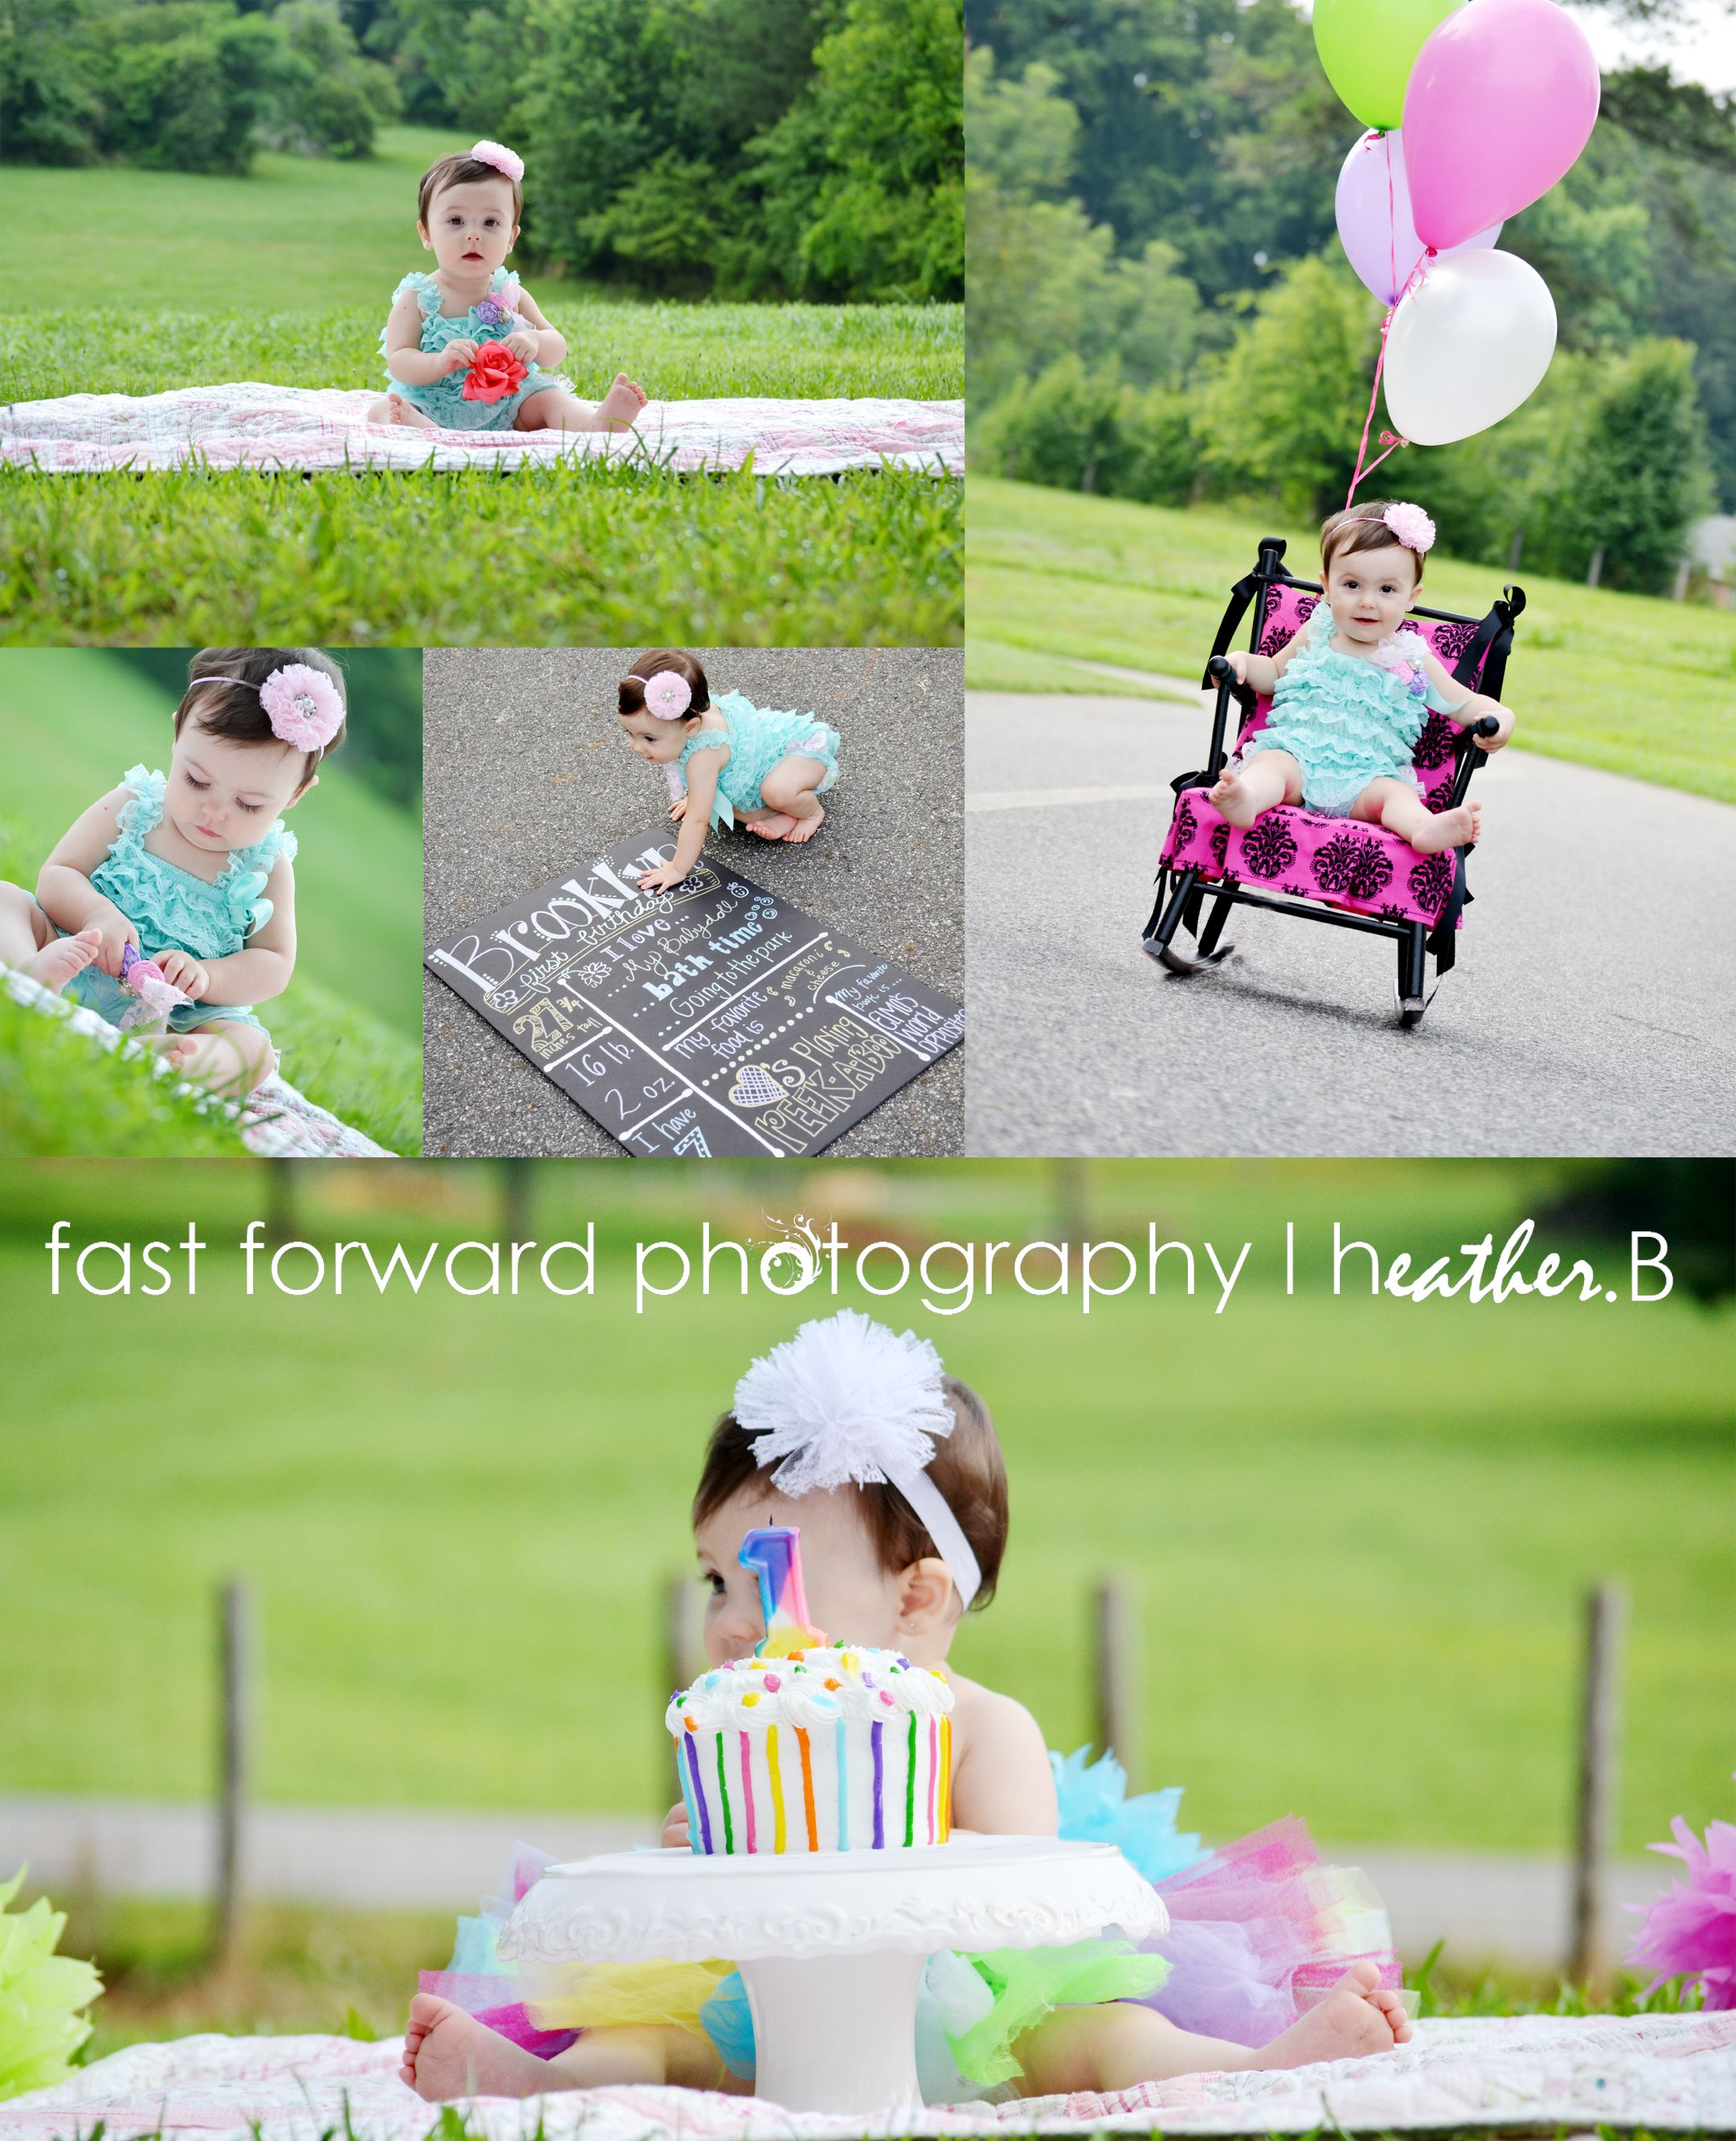 Baby First Birthday Photo Shoot Pose And Props Ideas Outdoor Session Love The Colors 1st Birthday Pictures 1st Birthday Photos Birthday Photography